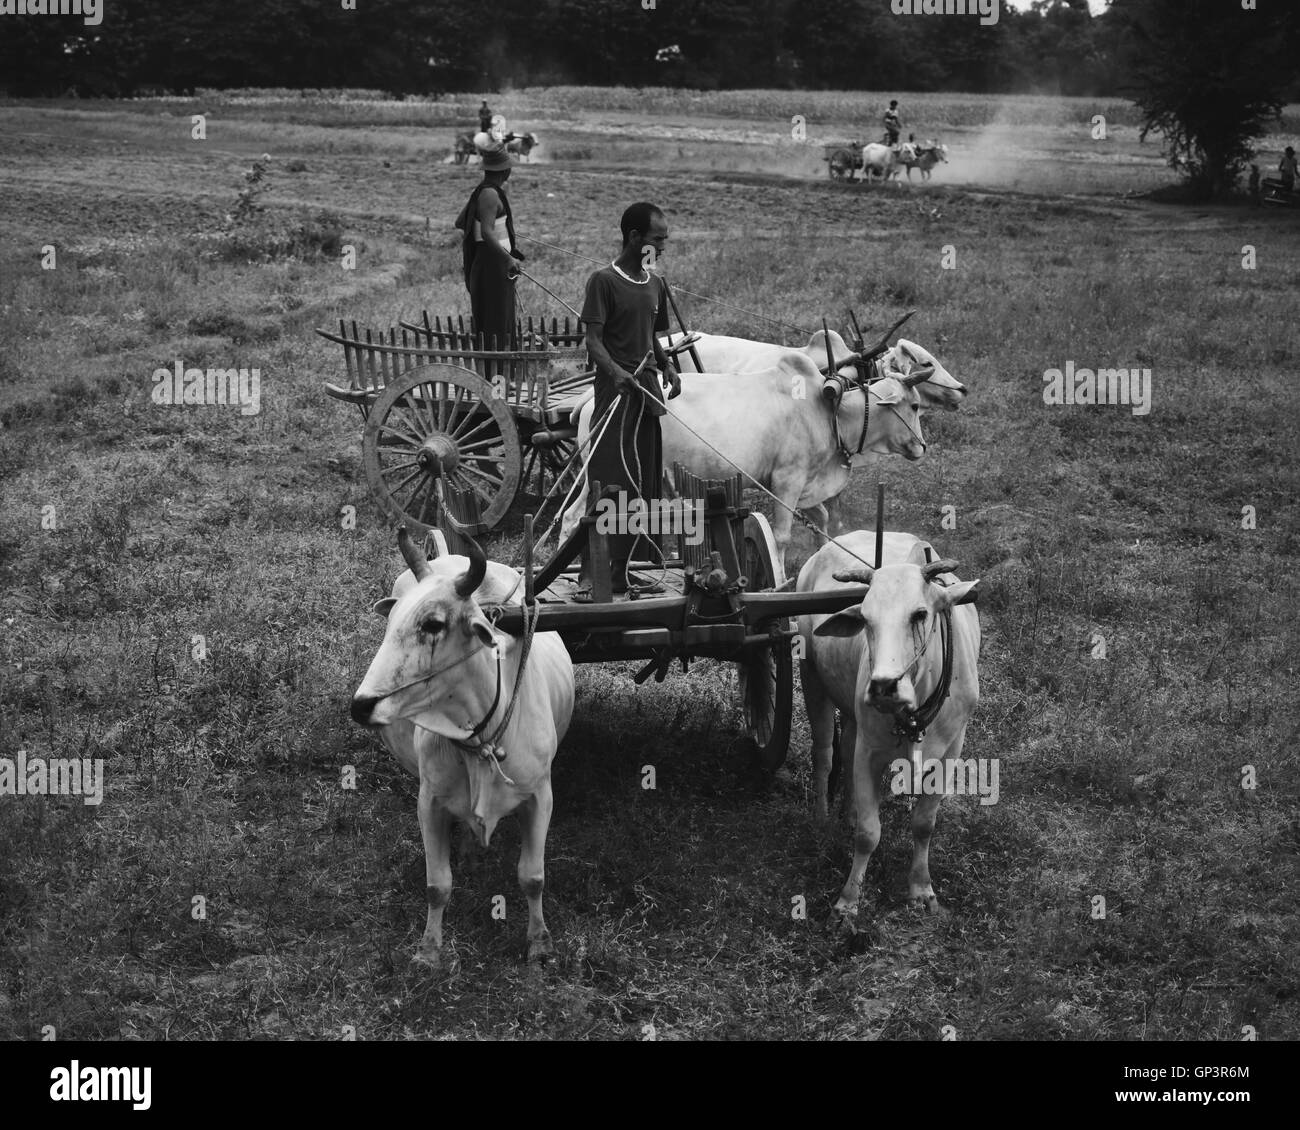 Going back in time using oxcart in Myanmar (Burma) - Stock Image